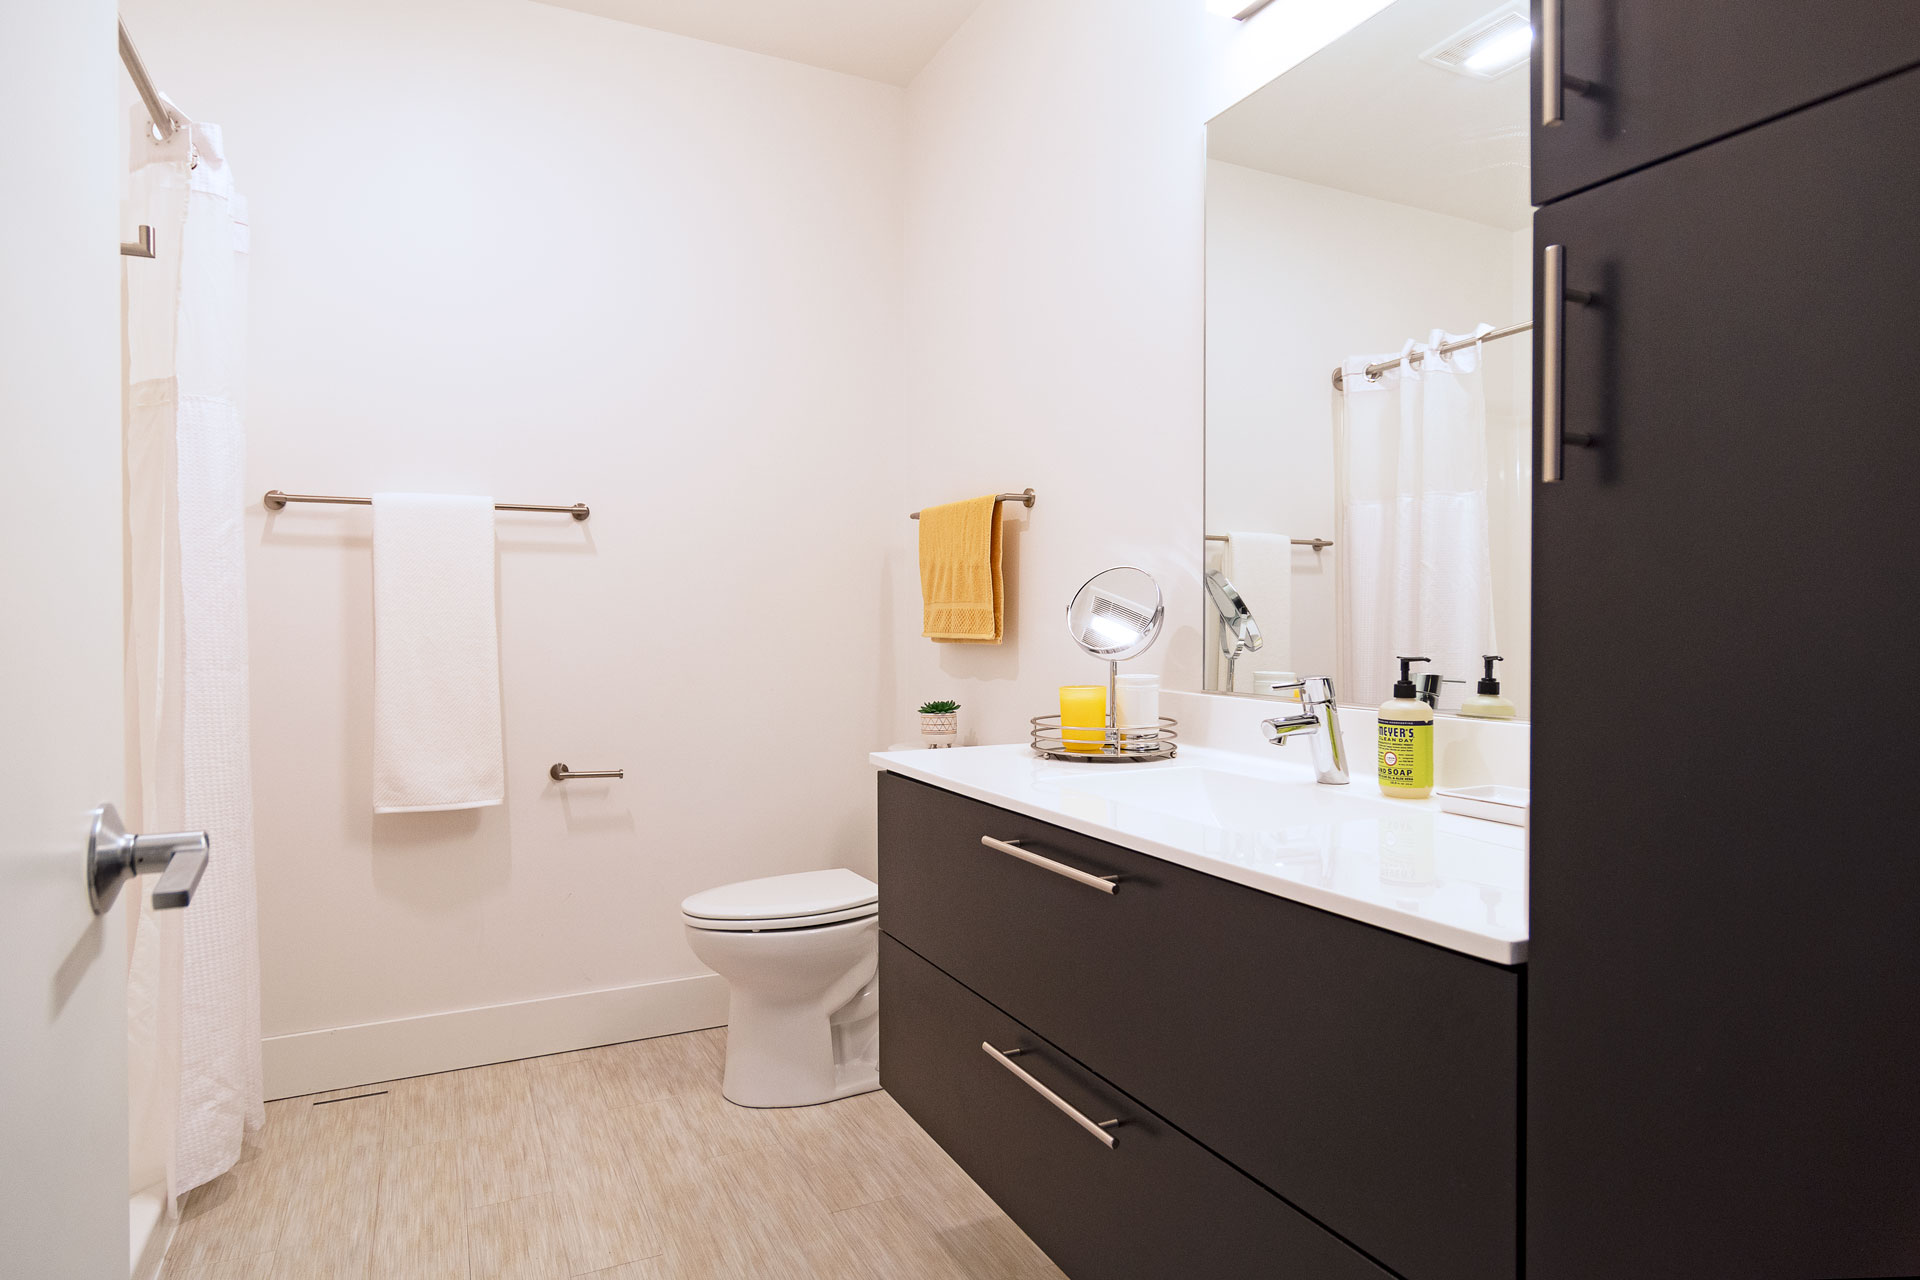 Large Cabinet Space in Bathroom